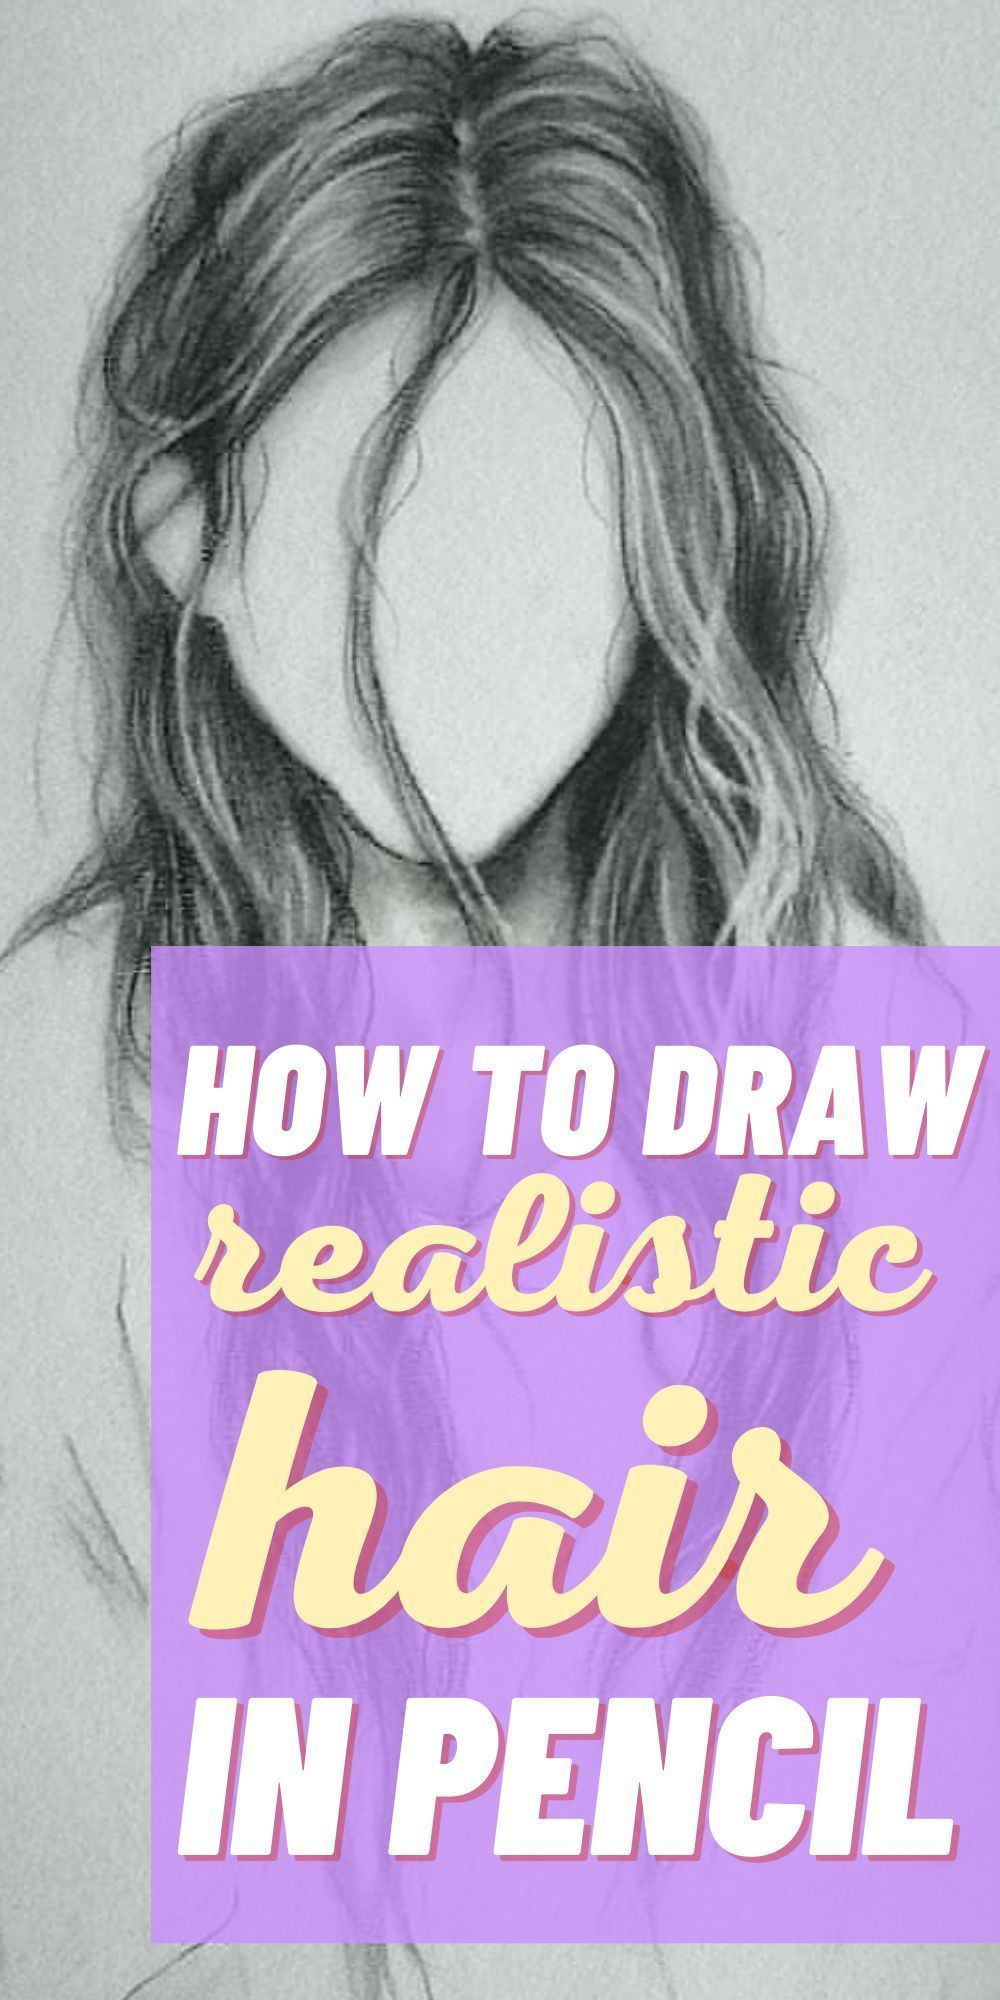 How To Draw Hair Easy To Follow Instructions In Pencil Realistic In 2020 How To Draw Hair Realistic Drawings Beautiful Pencil Drawings